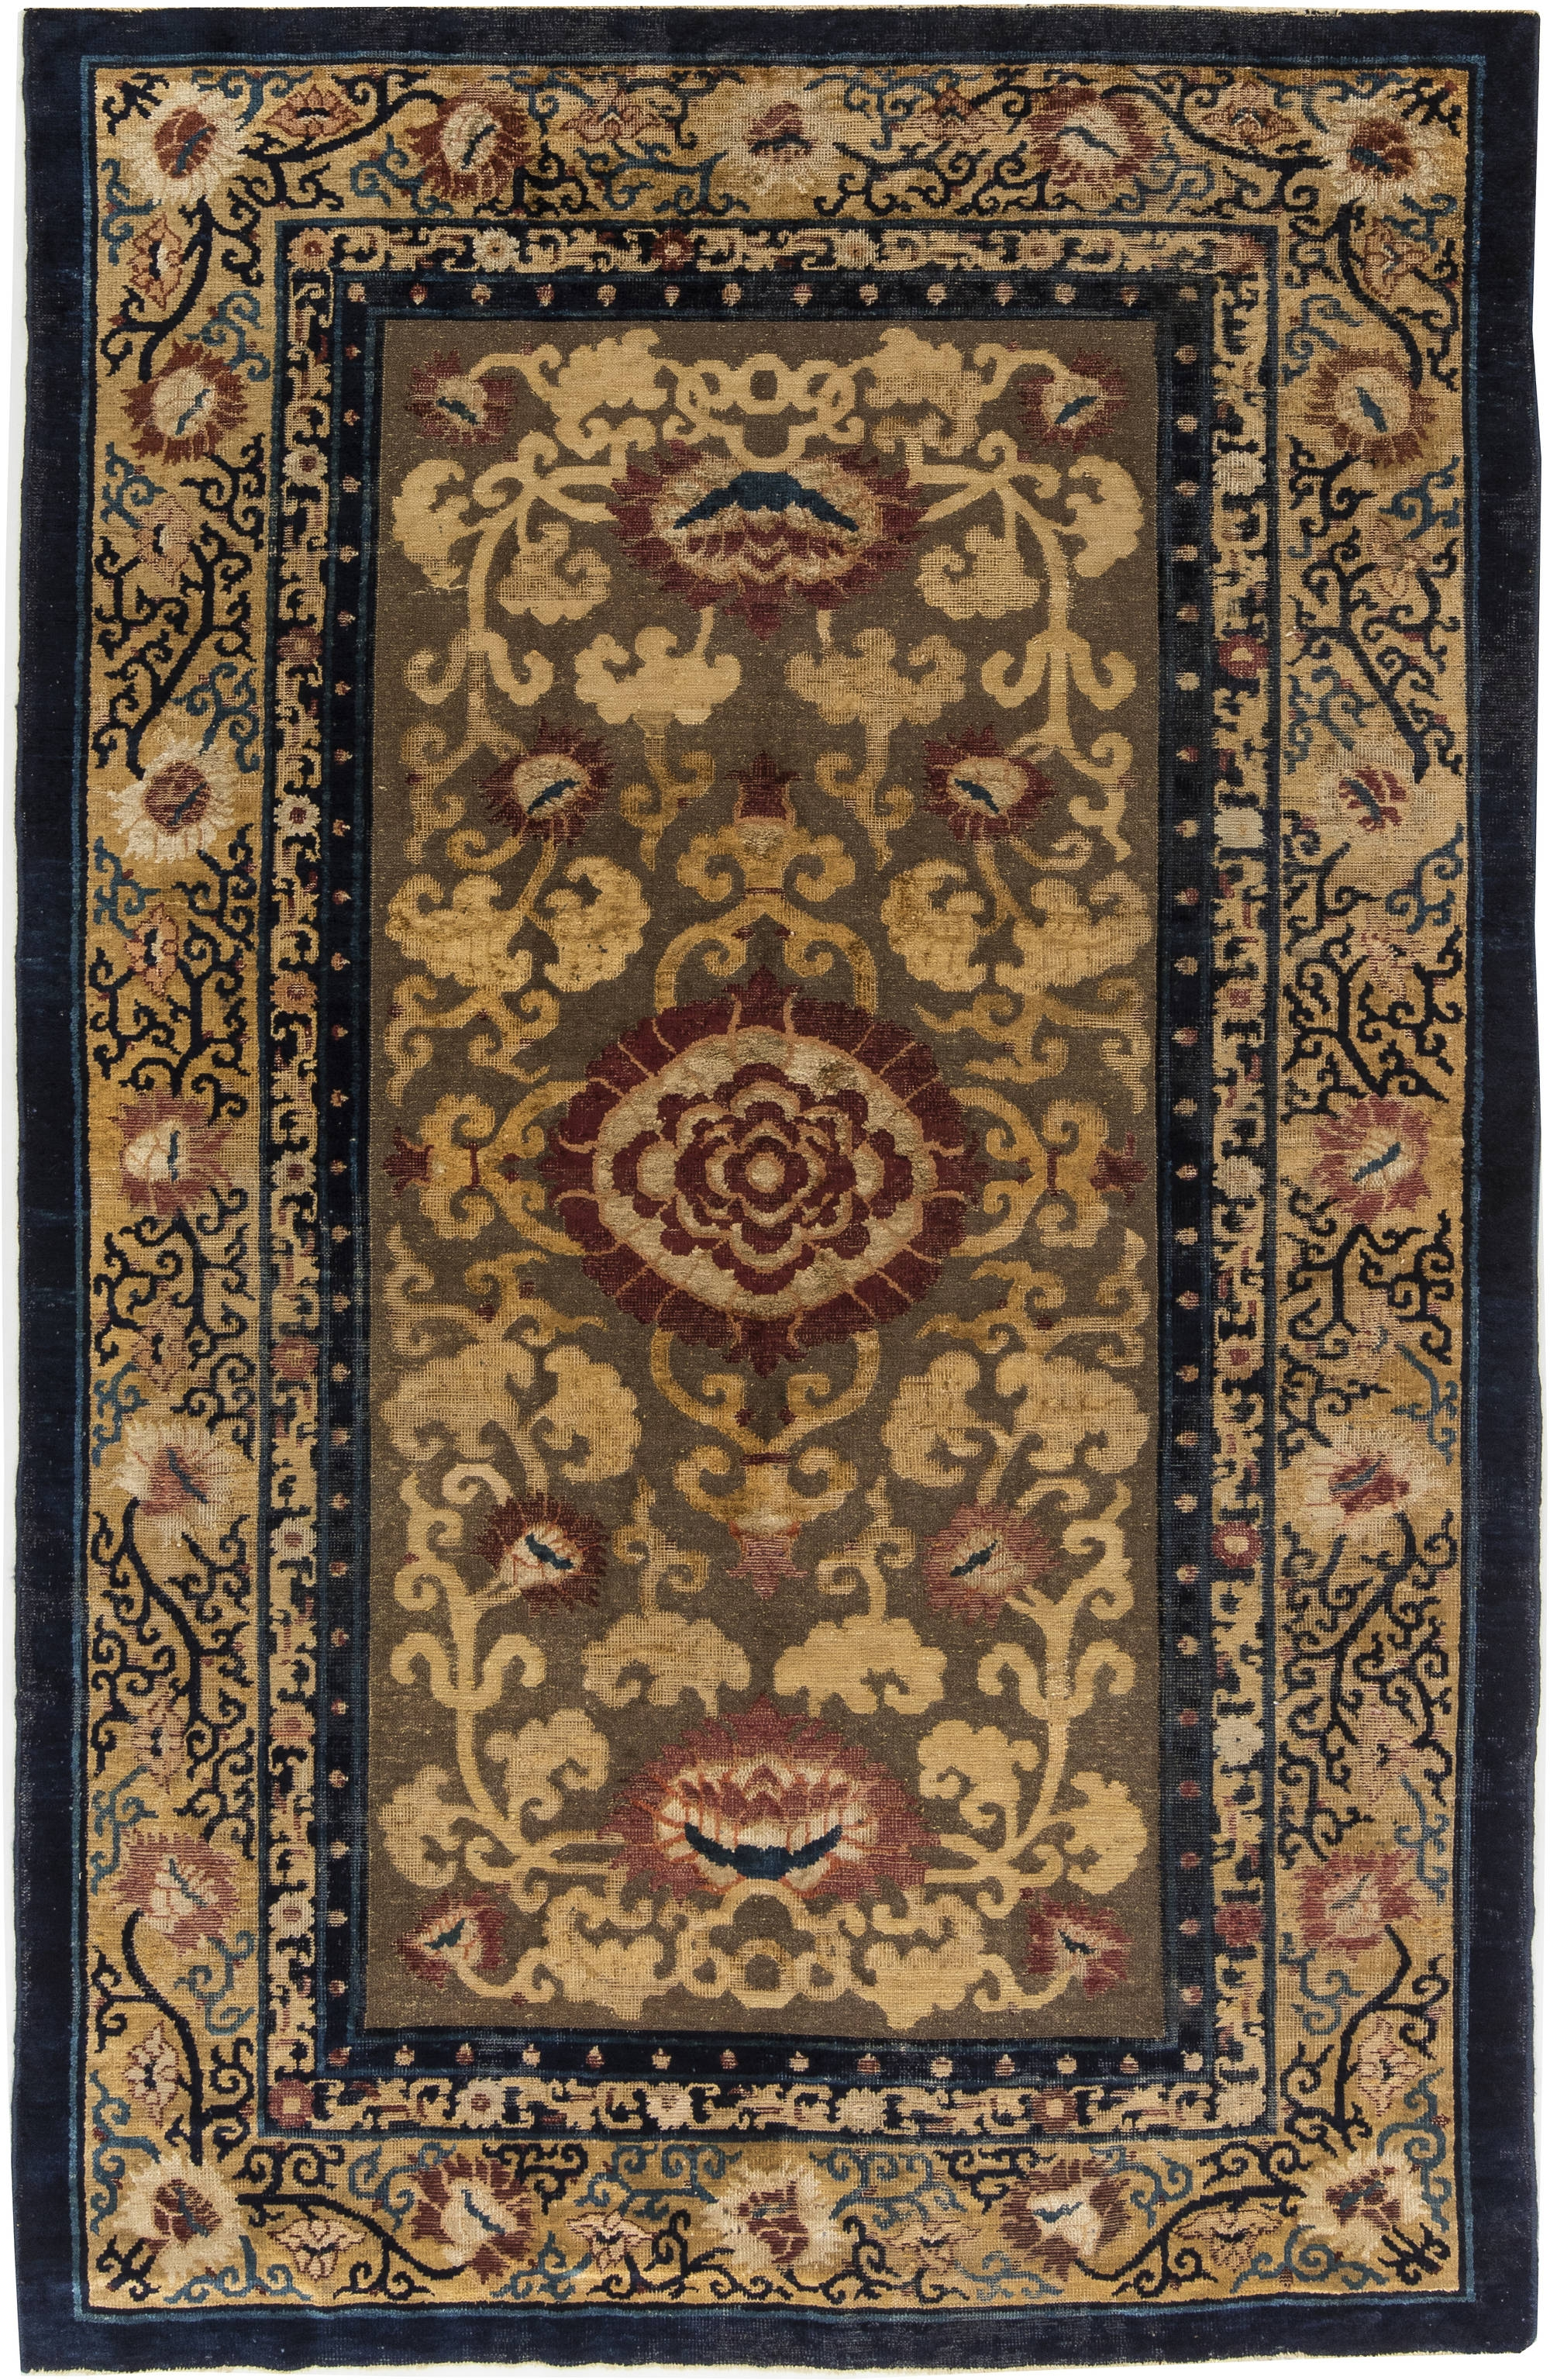 Chinese Rugs From Rug Collection Doris Leslie Blau With Chinese Rugs (Image 13 of 15)